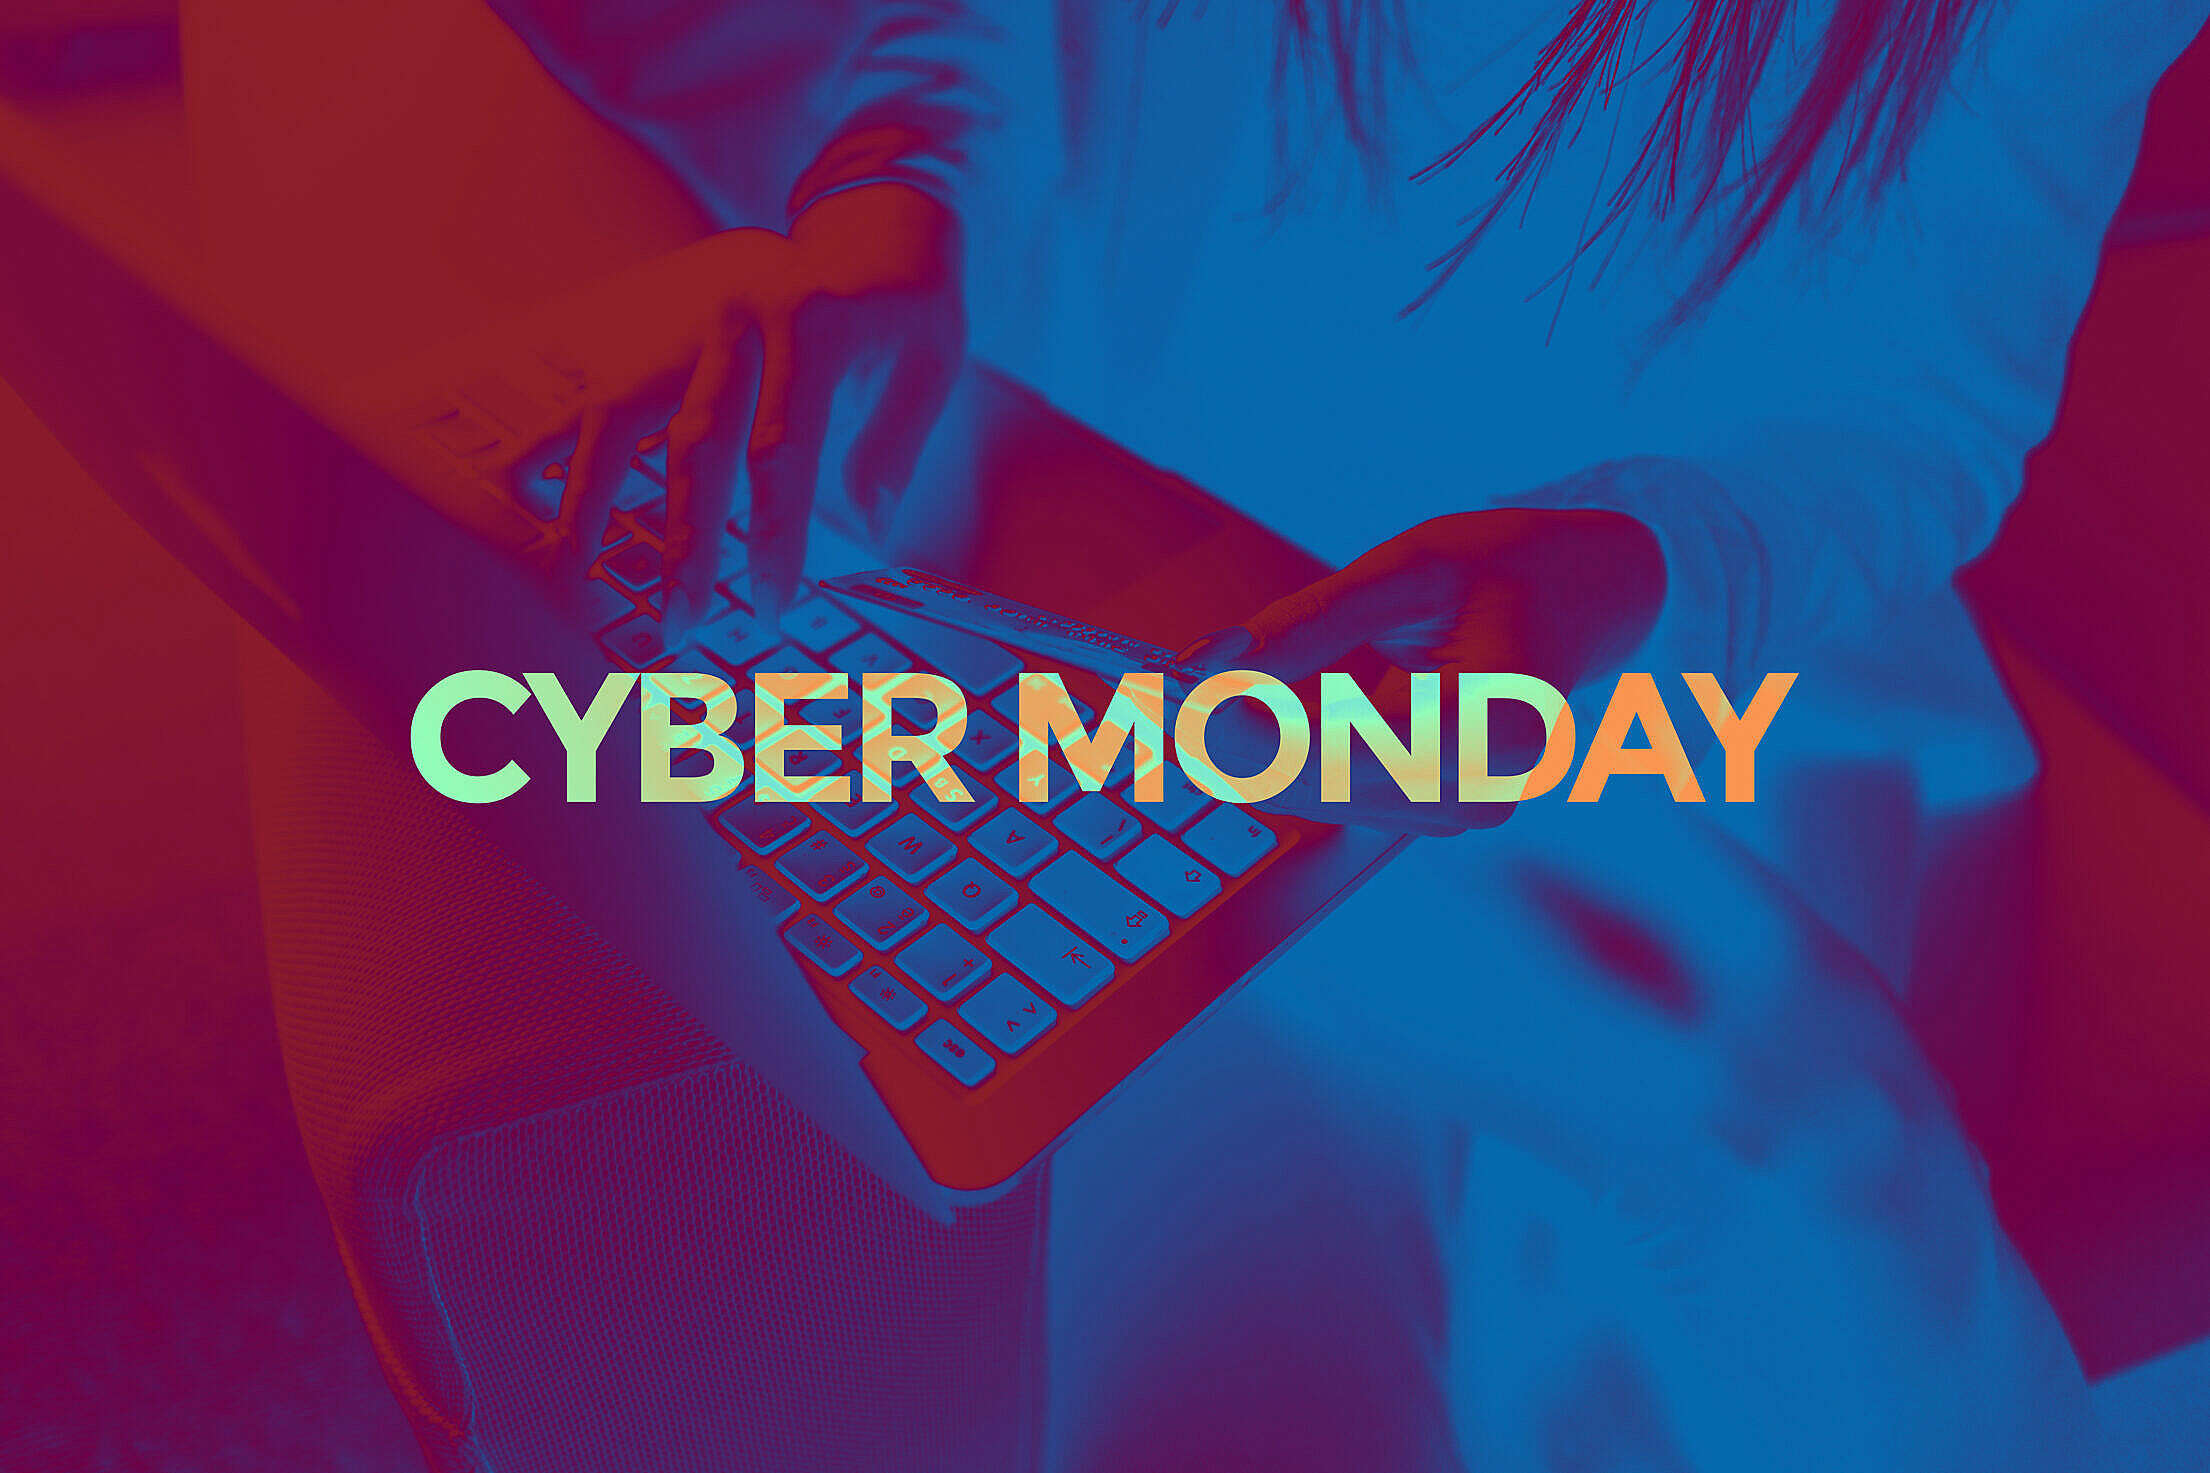 Cyber Monday Lettering Free Stock Photo